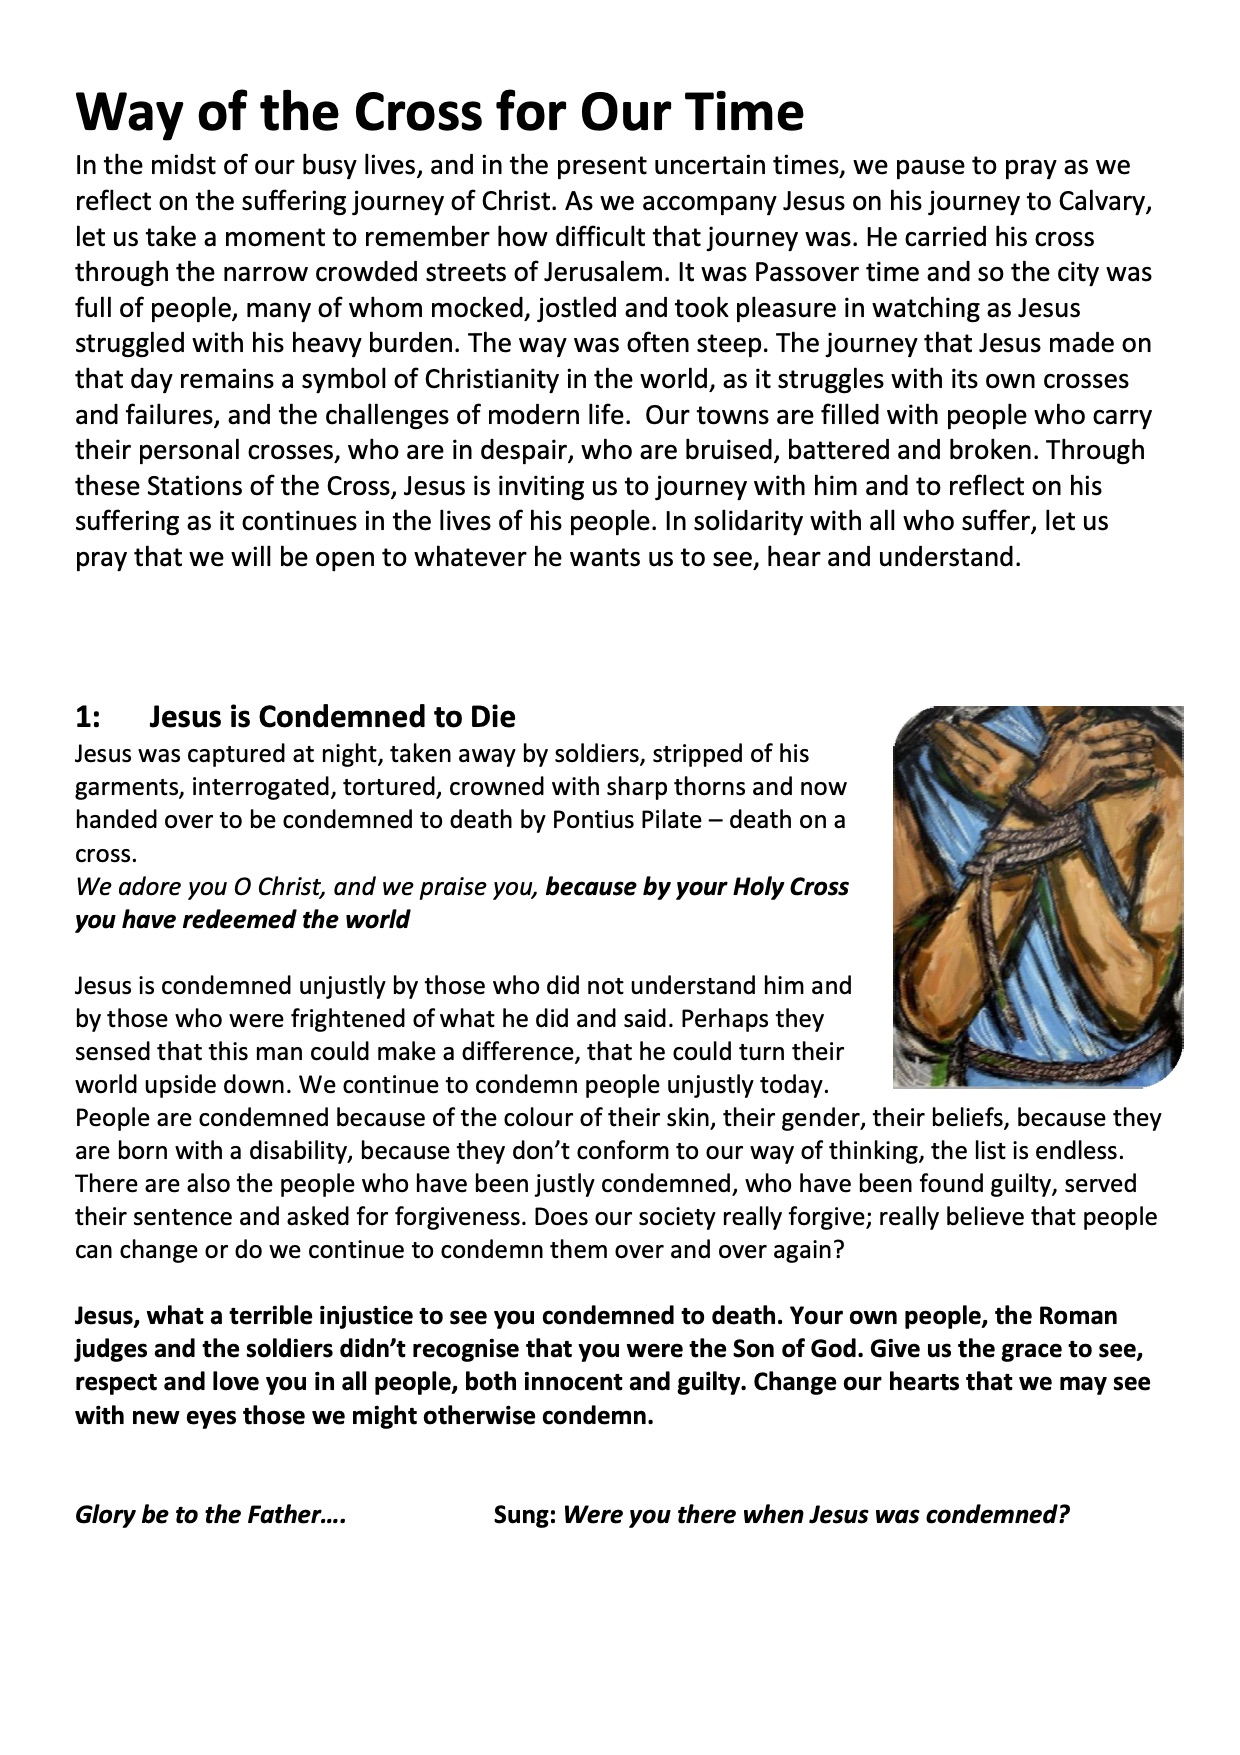 Station of the cross PDF download image